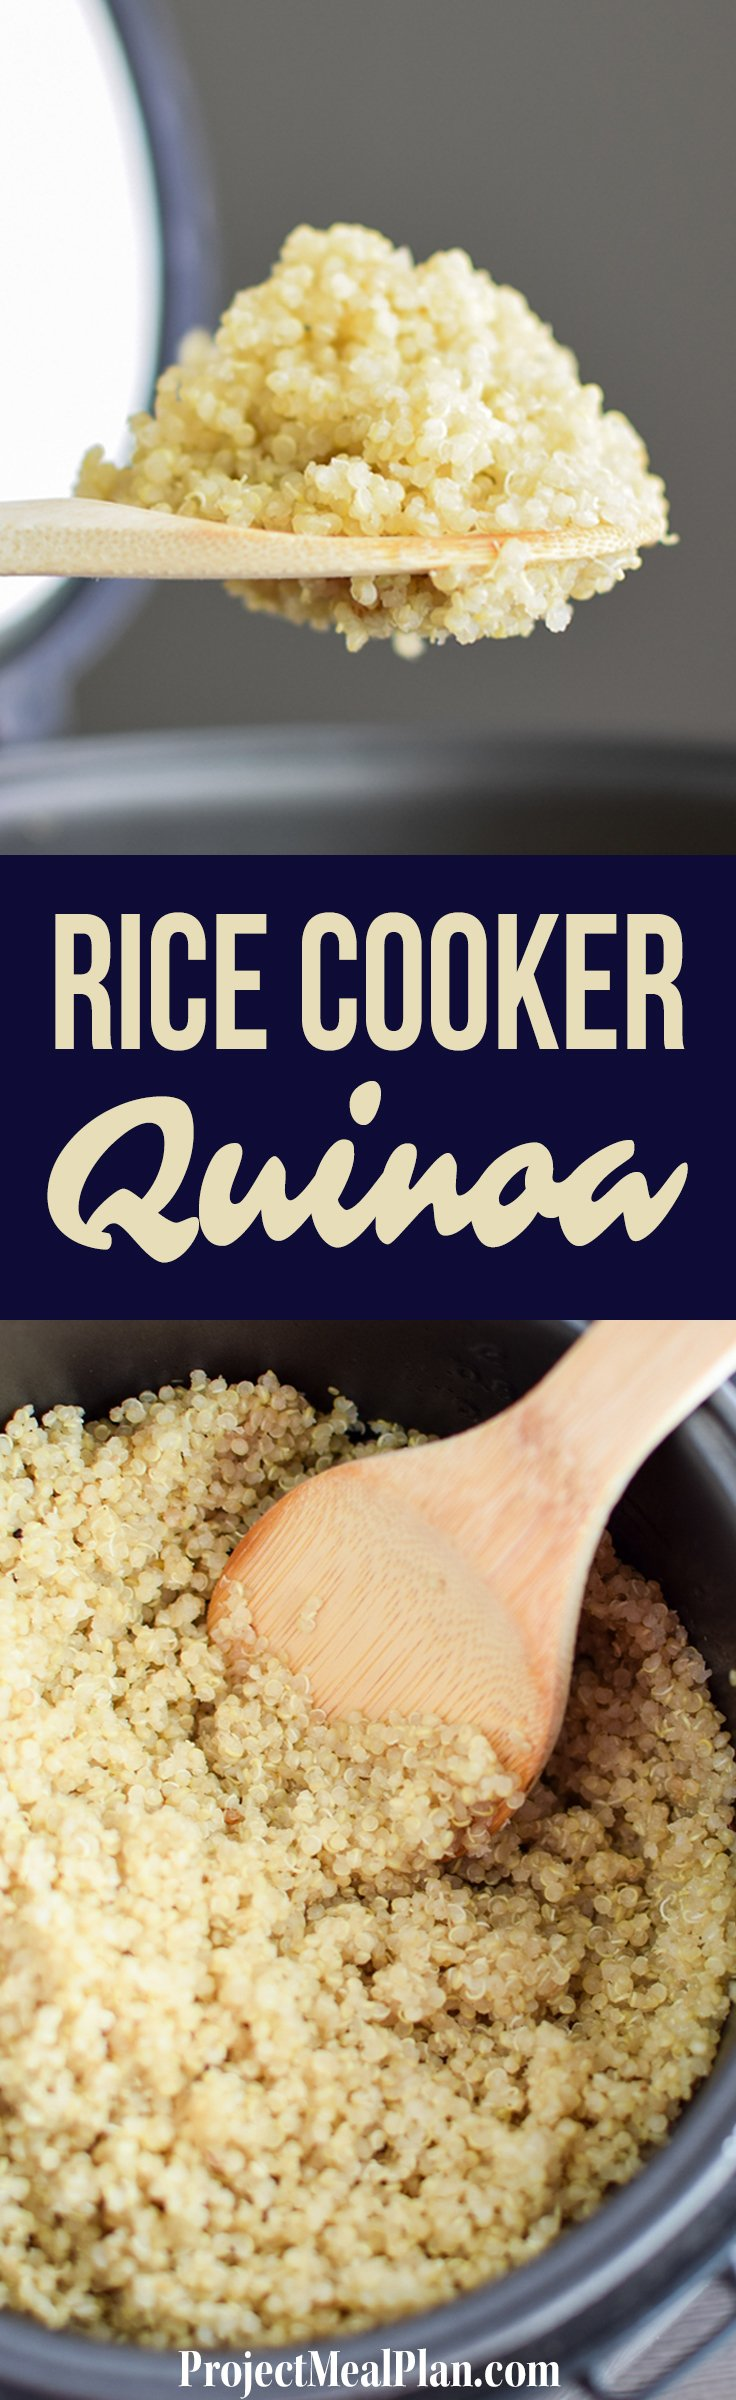 How To Cook Quinoa In The Rice Cooker  A Simple Explanation Of How To Make